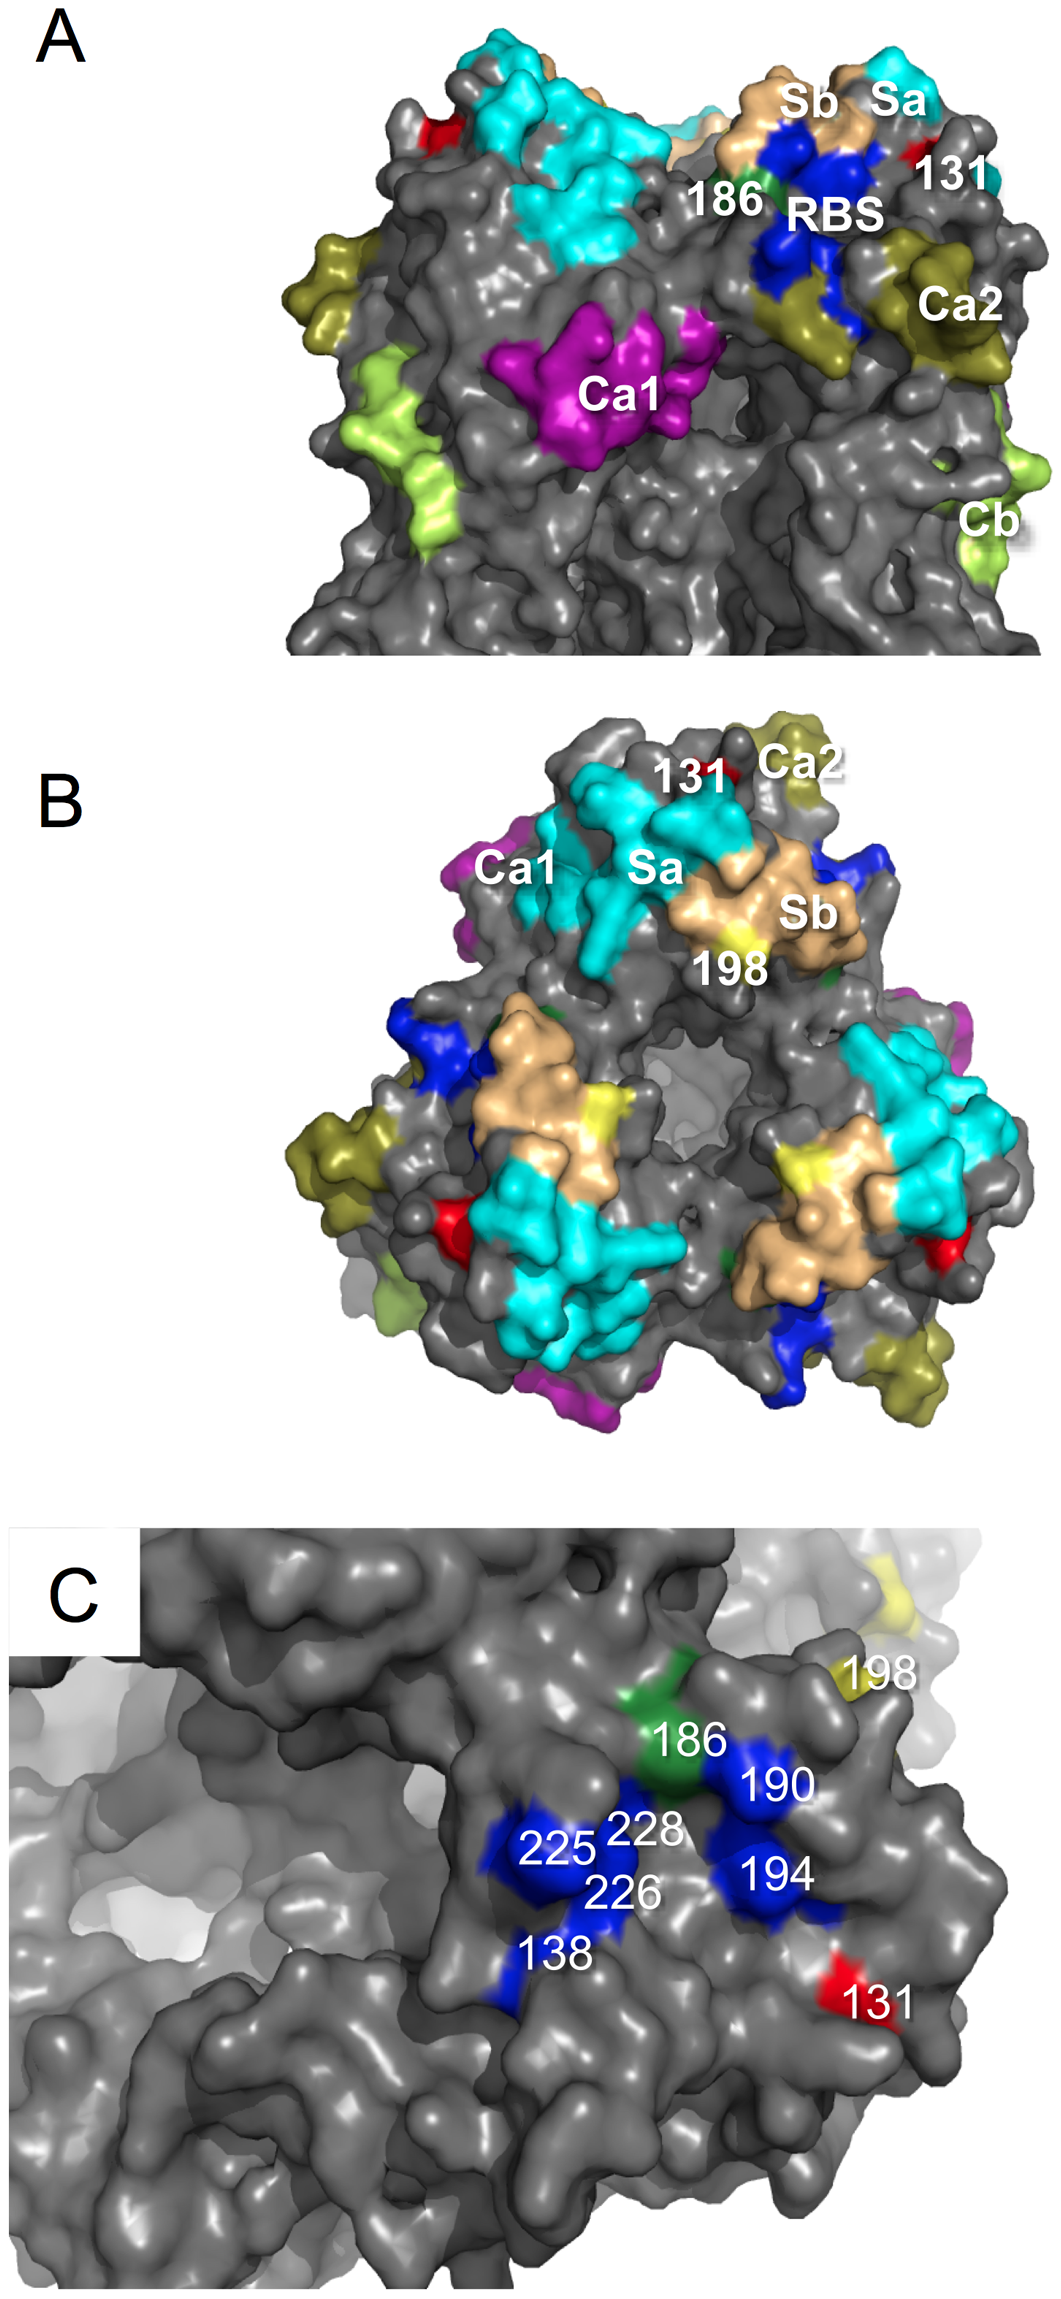 Structural analysis of amino acid mutations on the HA of ma-Ca/04.